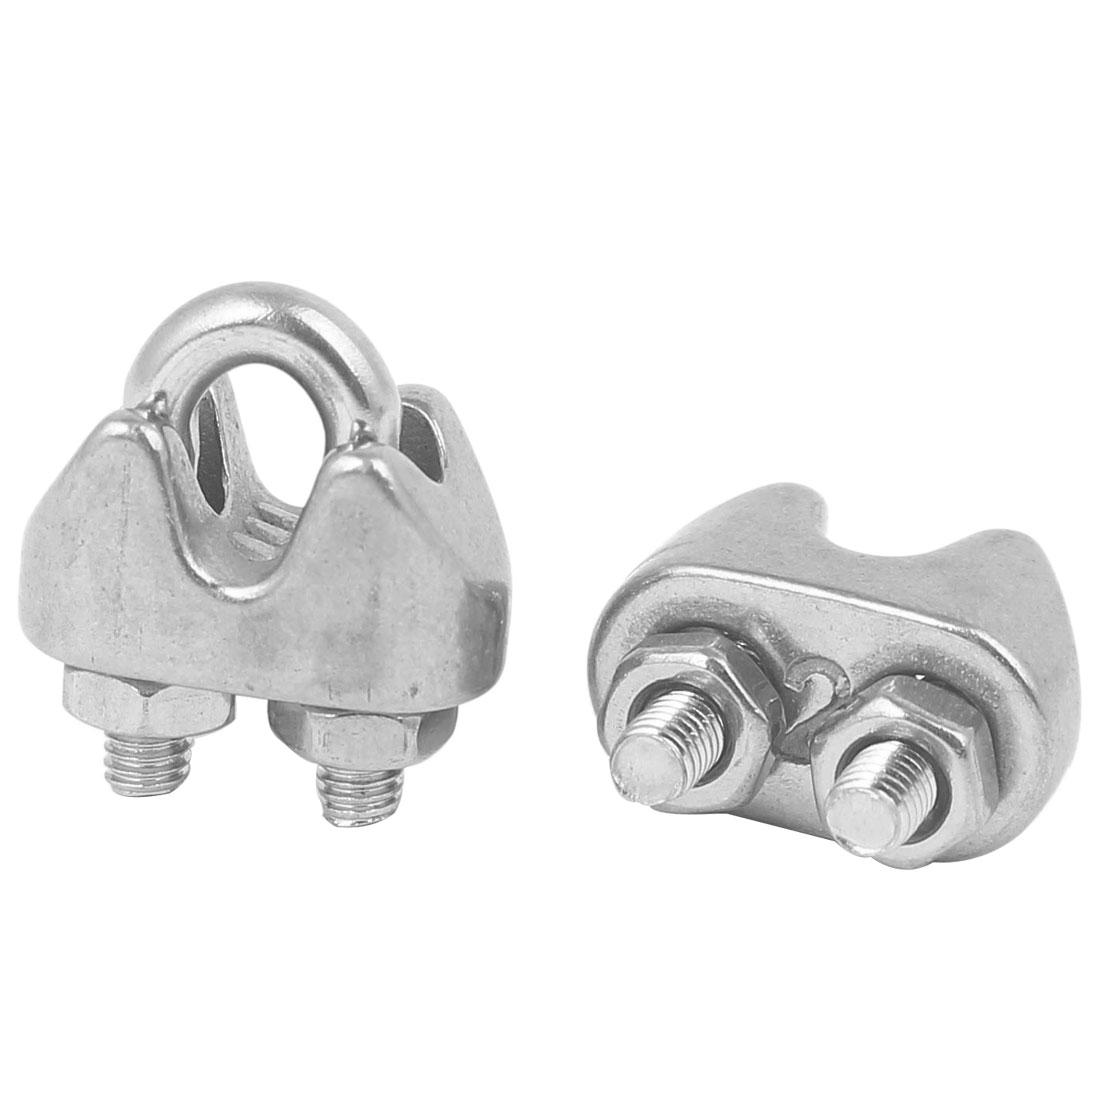 M2 304 Stainless Steel U-Shape Bolt Saddle Clamp Cable Wire Rope Clip 2PCS